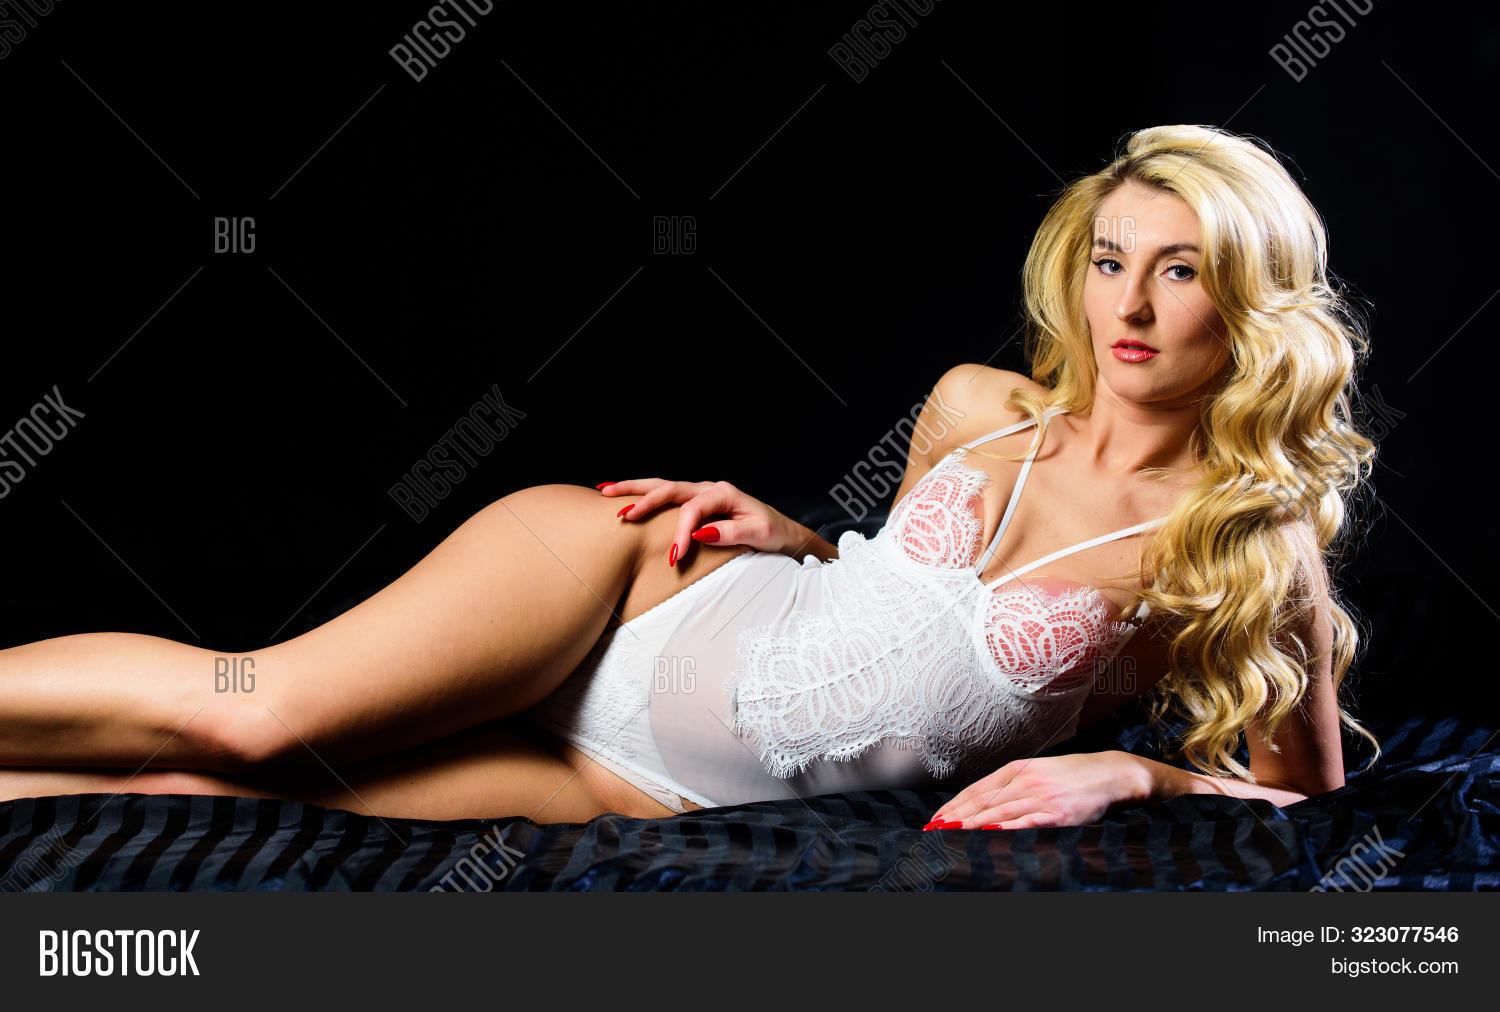 adorable,attractive,beautiful,blonde,body,clothes,confident,curly,cute,desire,erotic,fashion,fashionable,femininity,full,girl,glamorous,glamour,hair,lace,lady,languid,lay,lingerie,long,luxurious,makeup,model,nude,pretty,relaxed,seduce,seductive,seductress,sensual,sexi,sexy,slim,underwear,waiting,wear,woman,you,young